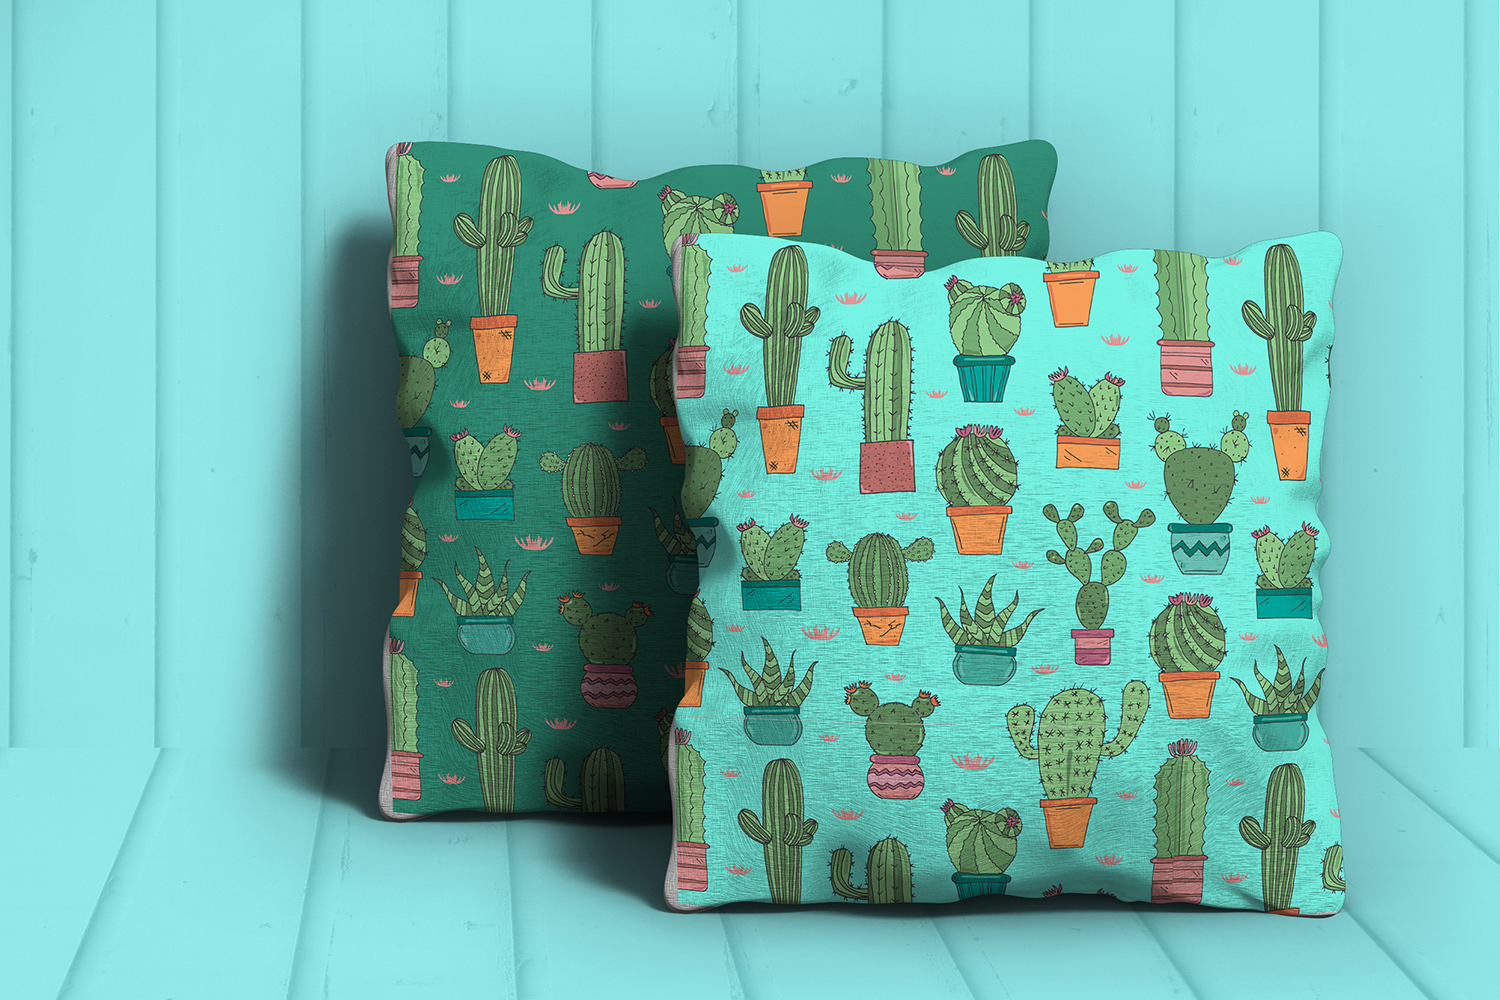 Hand Drawn Cactus Clipart Illustrations and Patterns Bundle example image 5